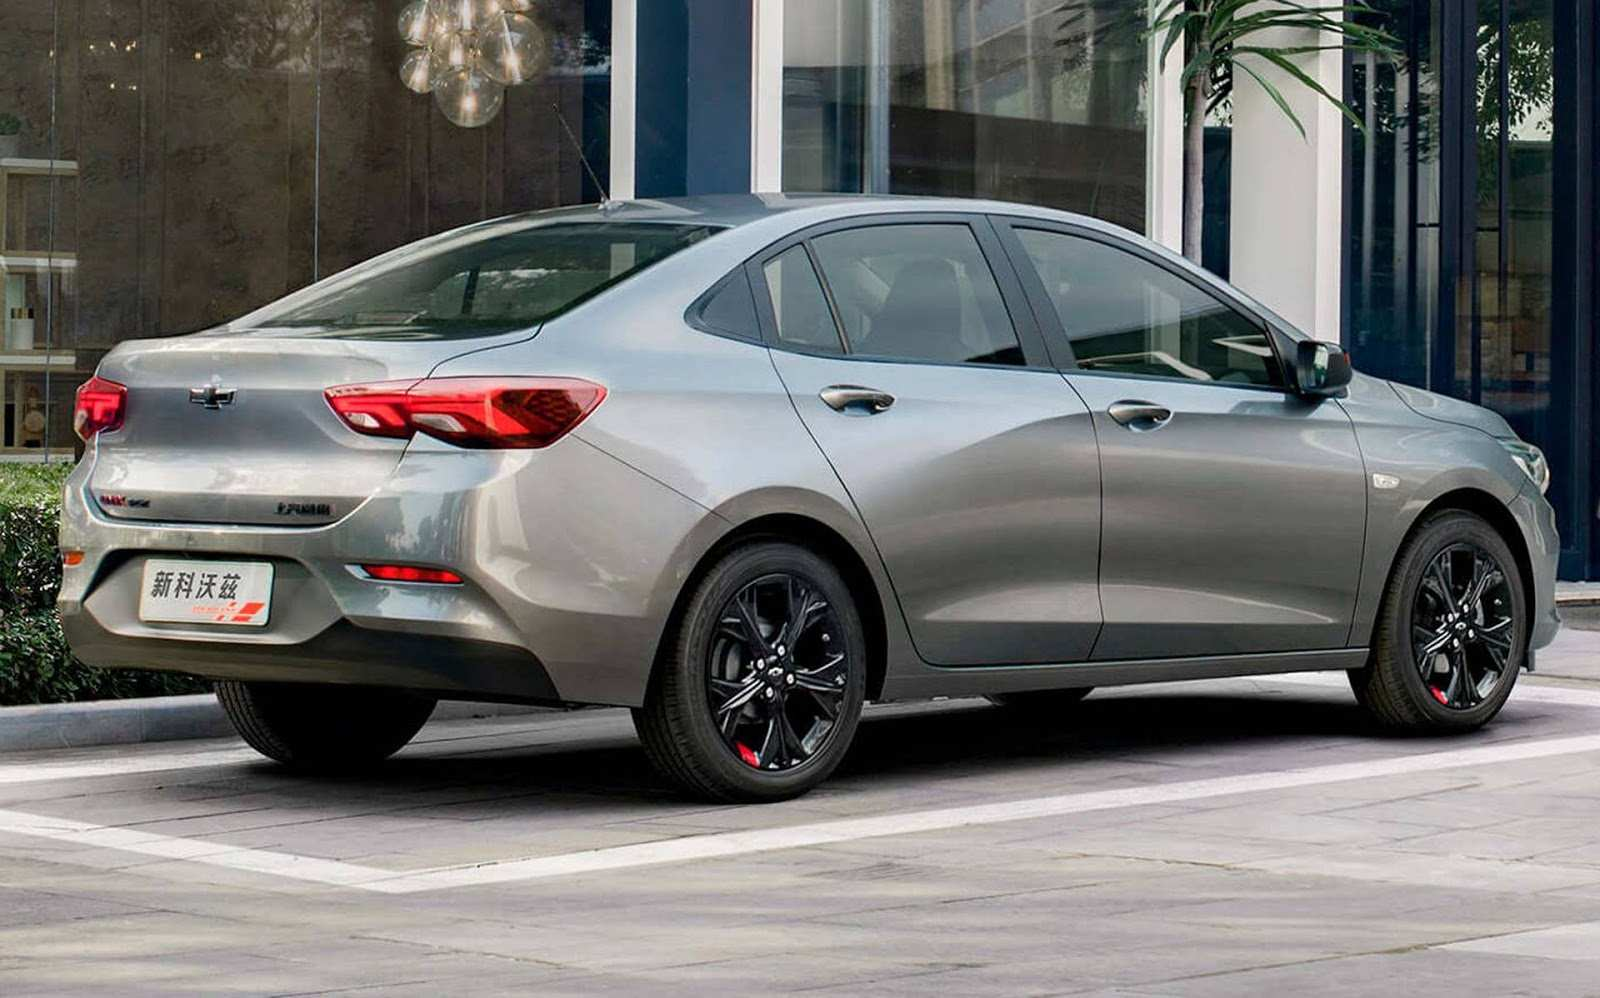 45 Concept of Chevrolet Novo Prisma 2020 Style for Chevrolet Novo Prisma 2020